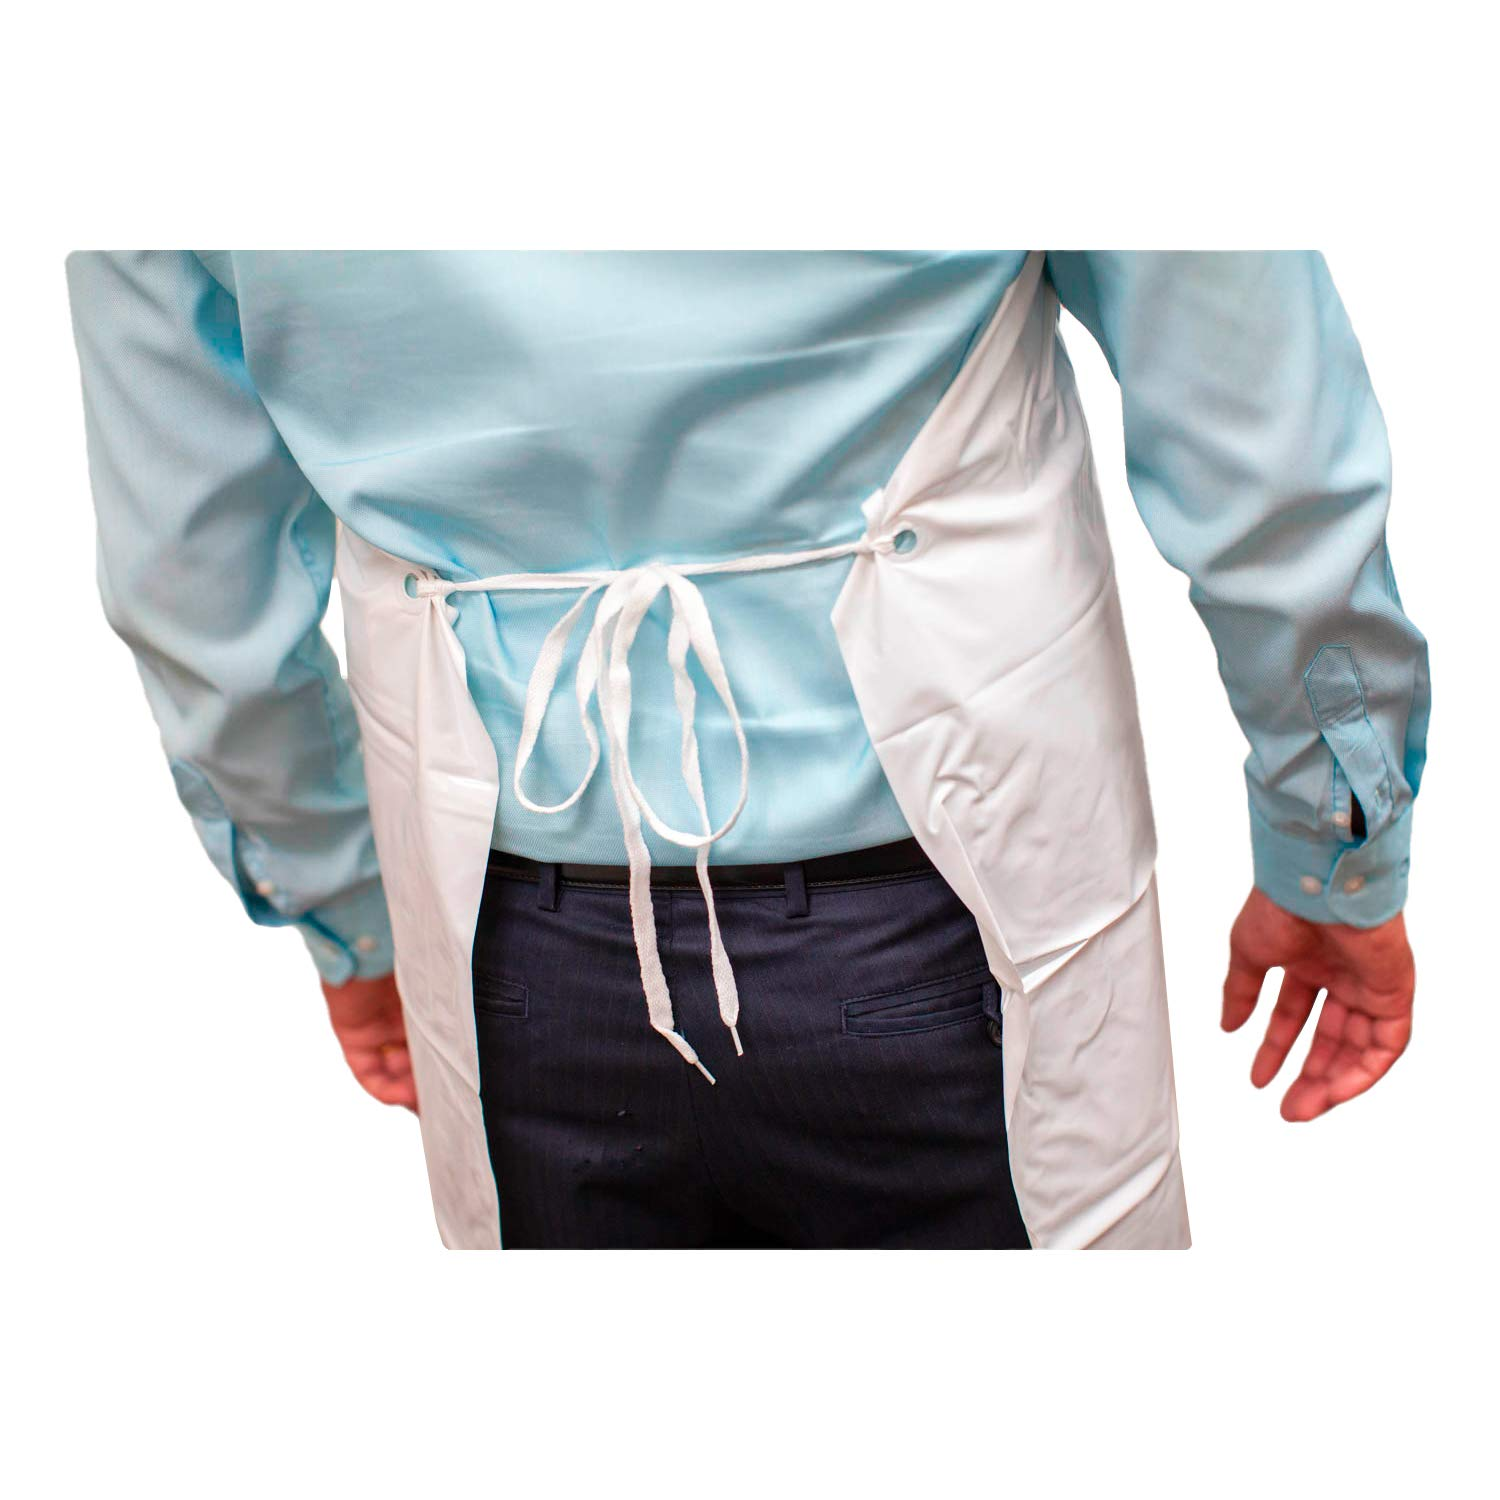 SAFE HANDLER PVC Apron   Smooth finish to Prevent Bacterial Growth, Comfortable, Easily Adjustable, Waterproof Material, WHITE (Case of 50) by Safe Handler (Image #7)